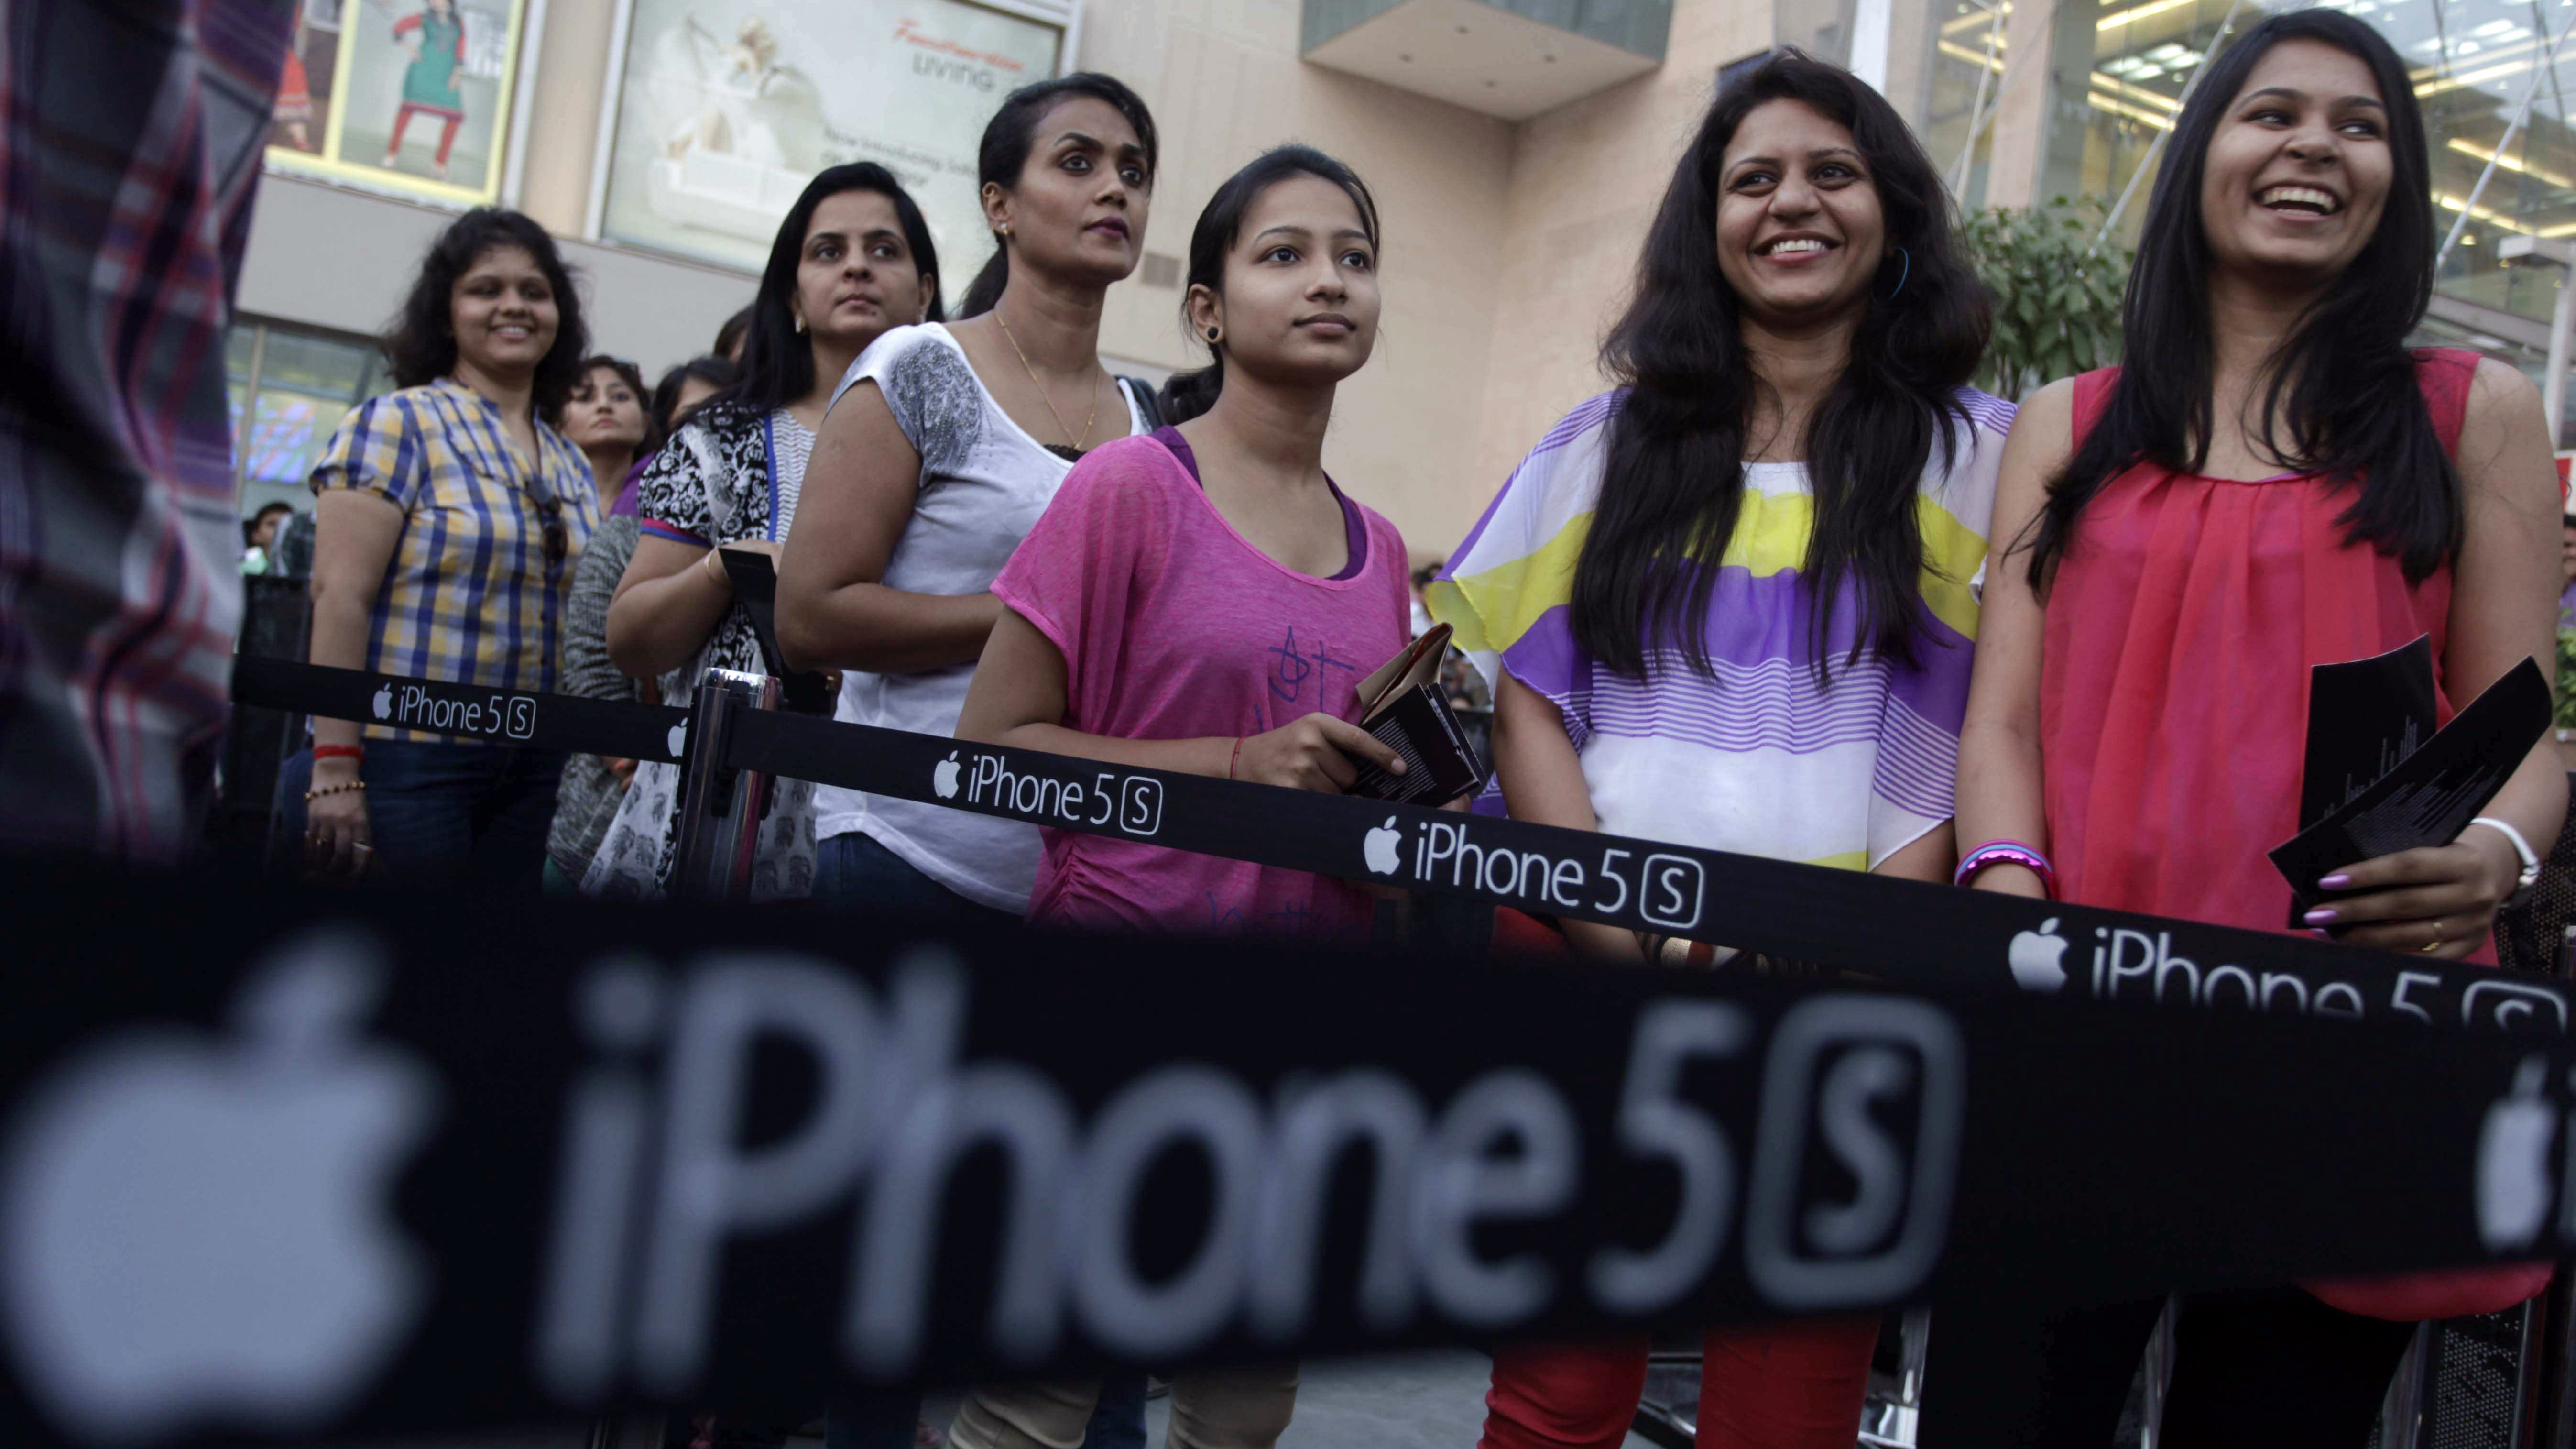 Indians stand in a queue to purchase the newly launched iPhone 5c and 5s in Ahmadabad, India, Friday, Nov. 1, 2013. Apple's newest iPhones, the iPhone 5s and the cheaper iPhone 5c, are now officially available in the Indian markets starting Friday. (AP Photo/Ajit Solanki)